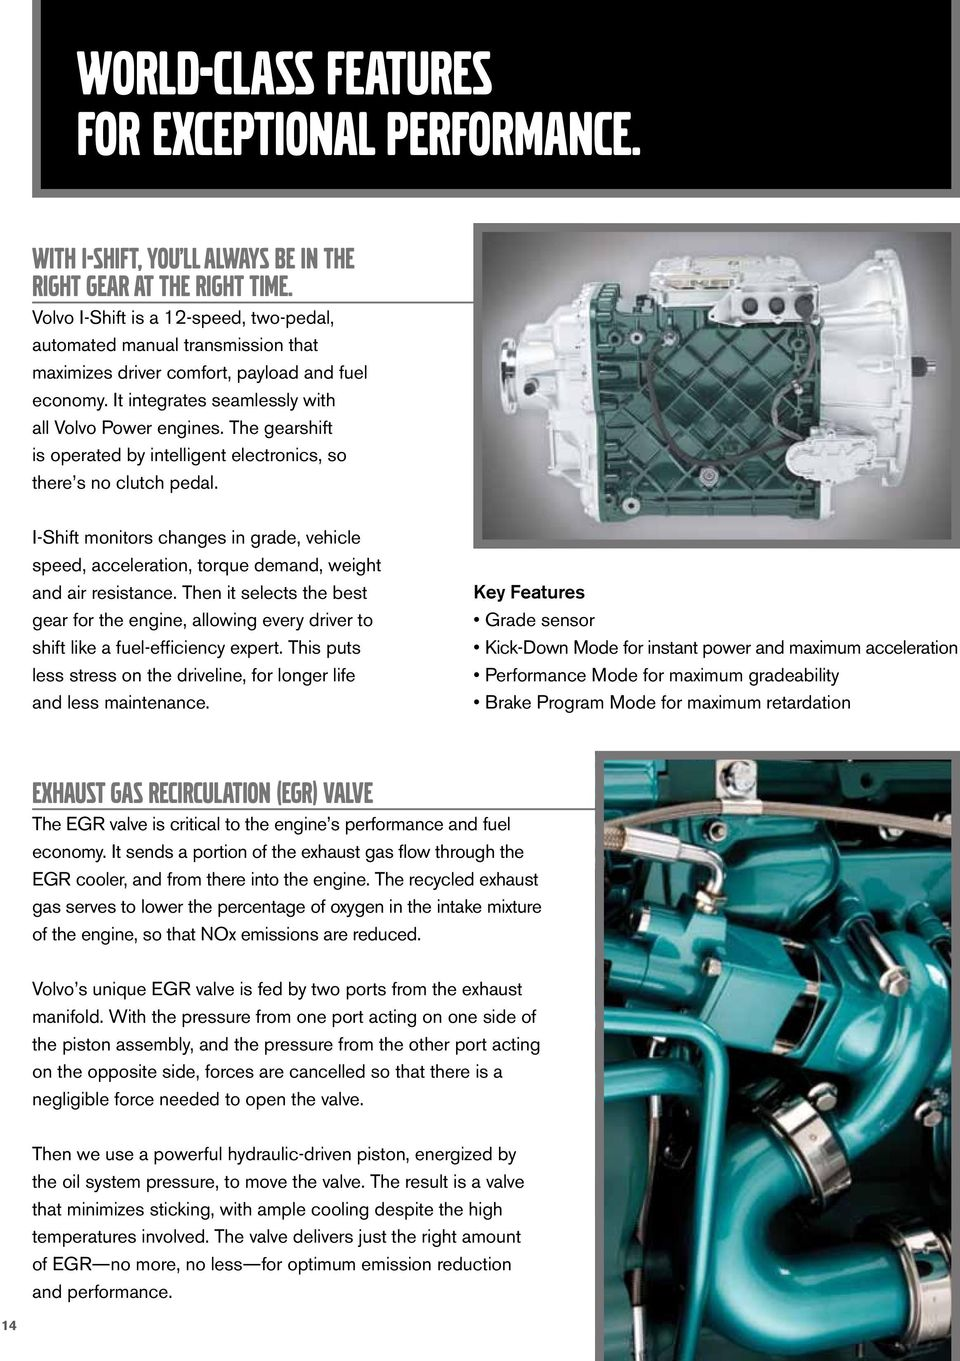 Volvo Power D16 D13 D11 Powertrain Product Tour Pdf 2012 Engine Diagram The Gearshift Is Operated By Intelligent Electronics So There S No Clutch Pedal I